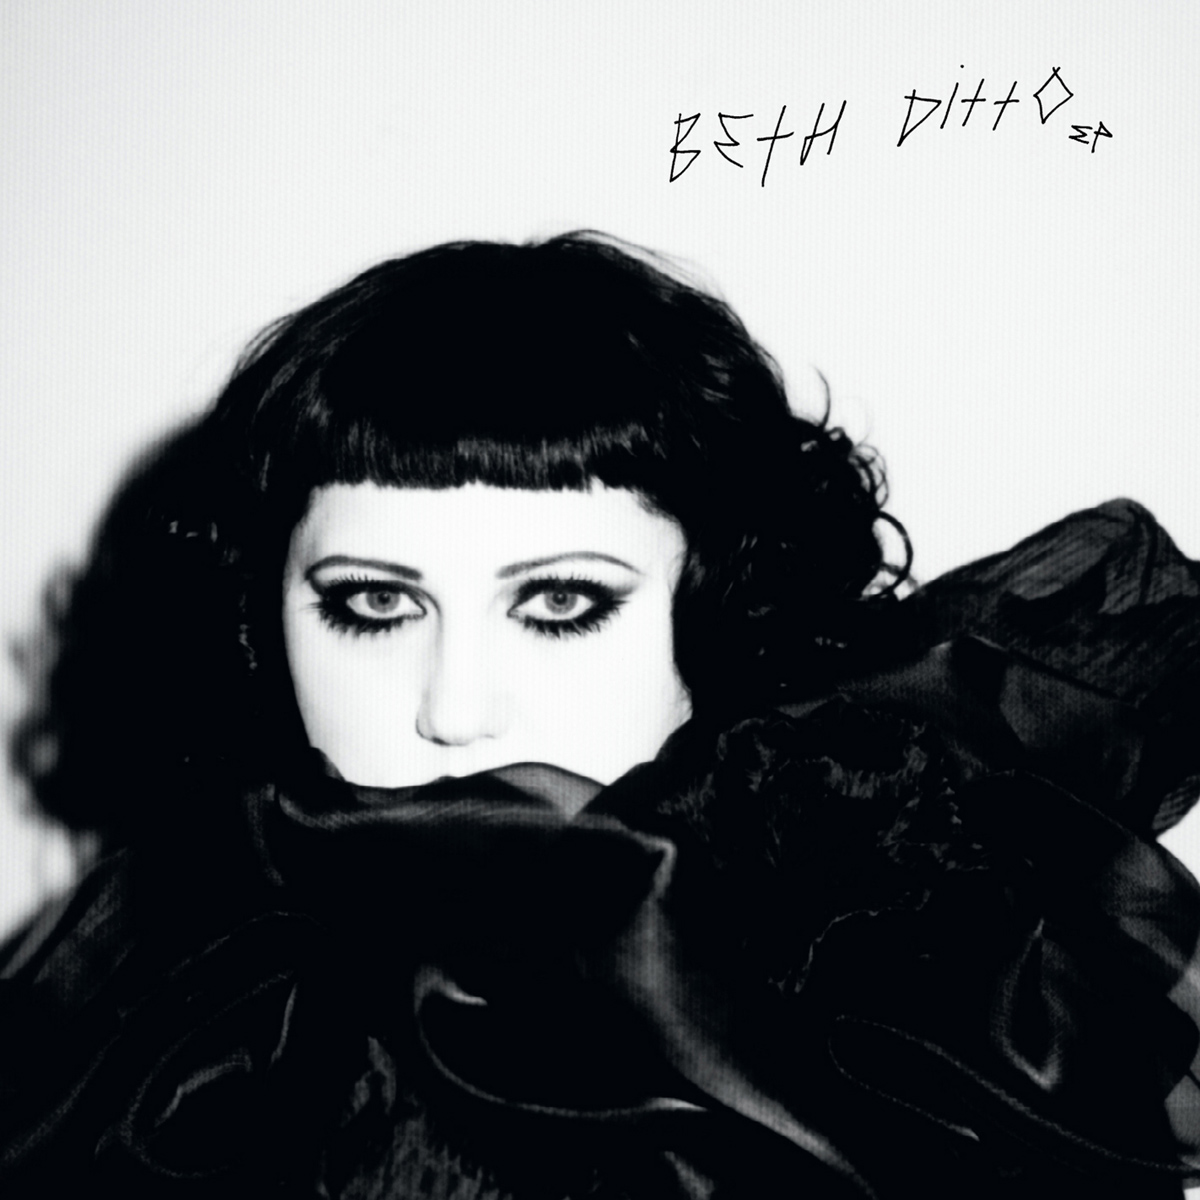 Beth Ditto - The Beth Ditto EP